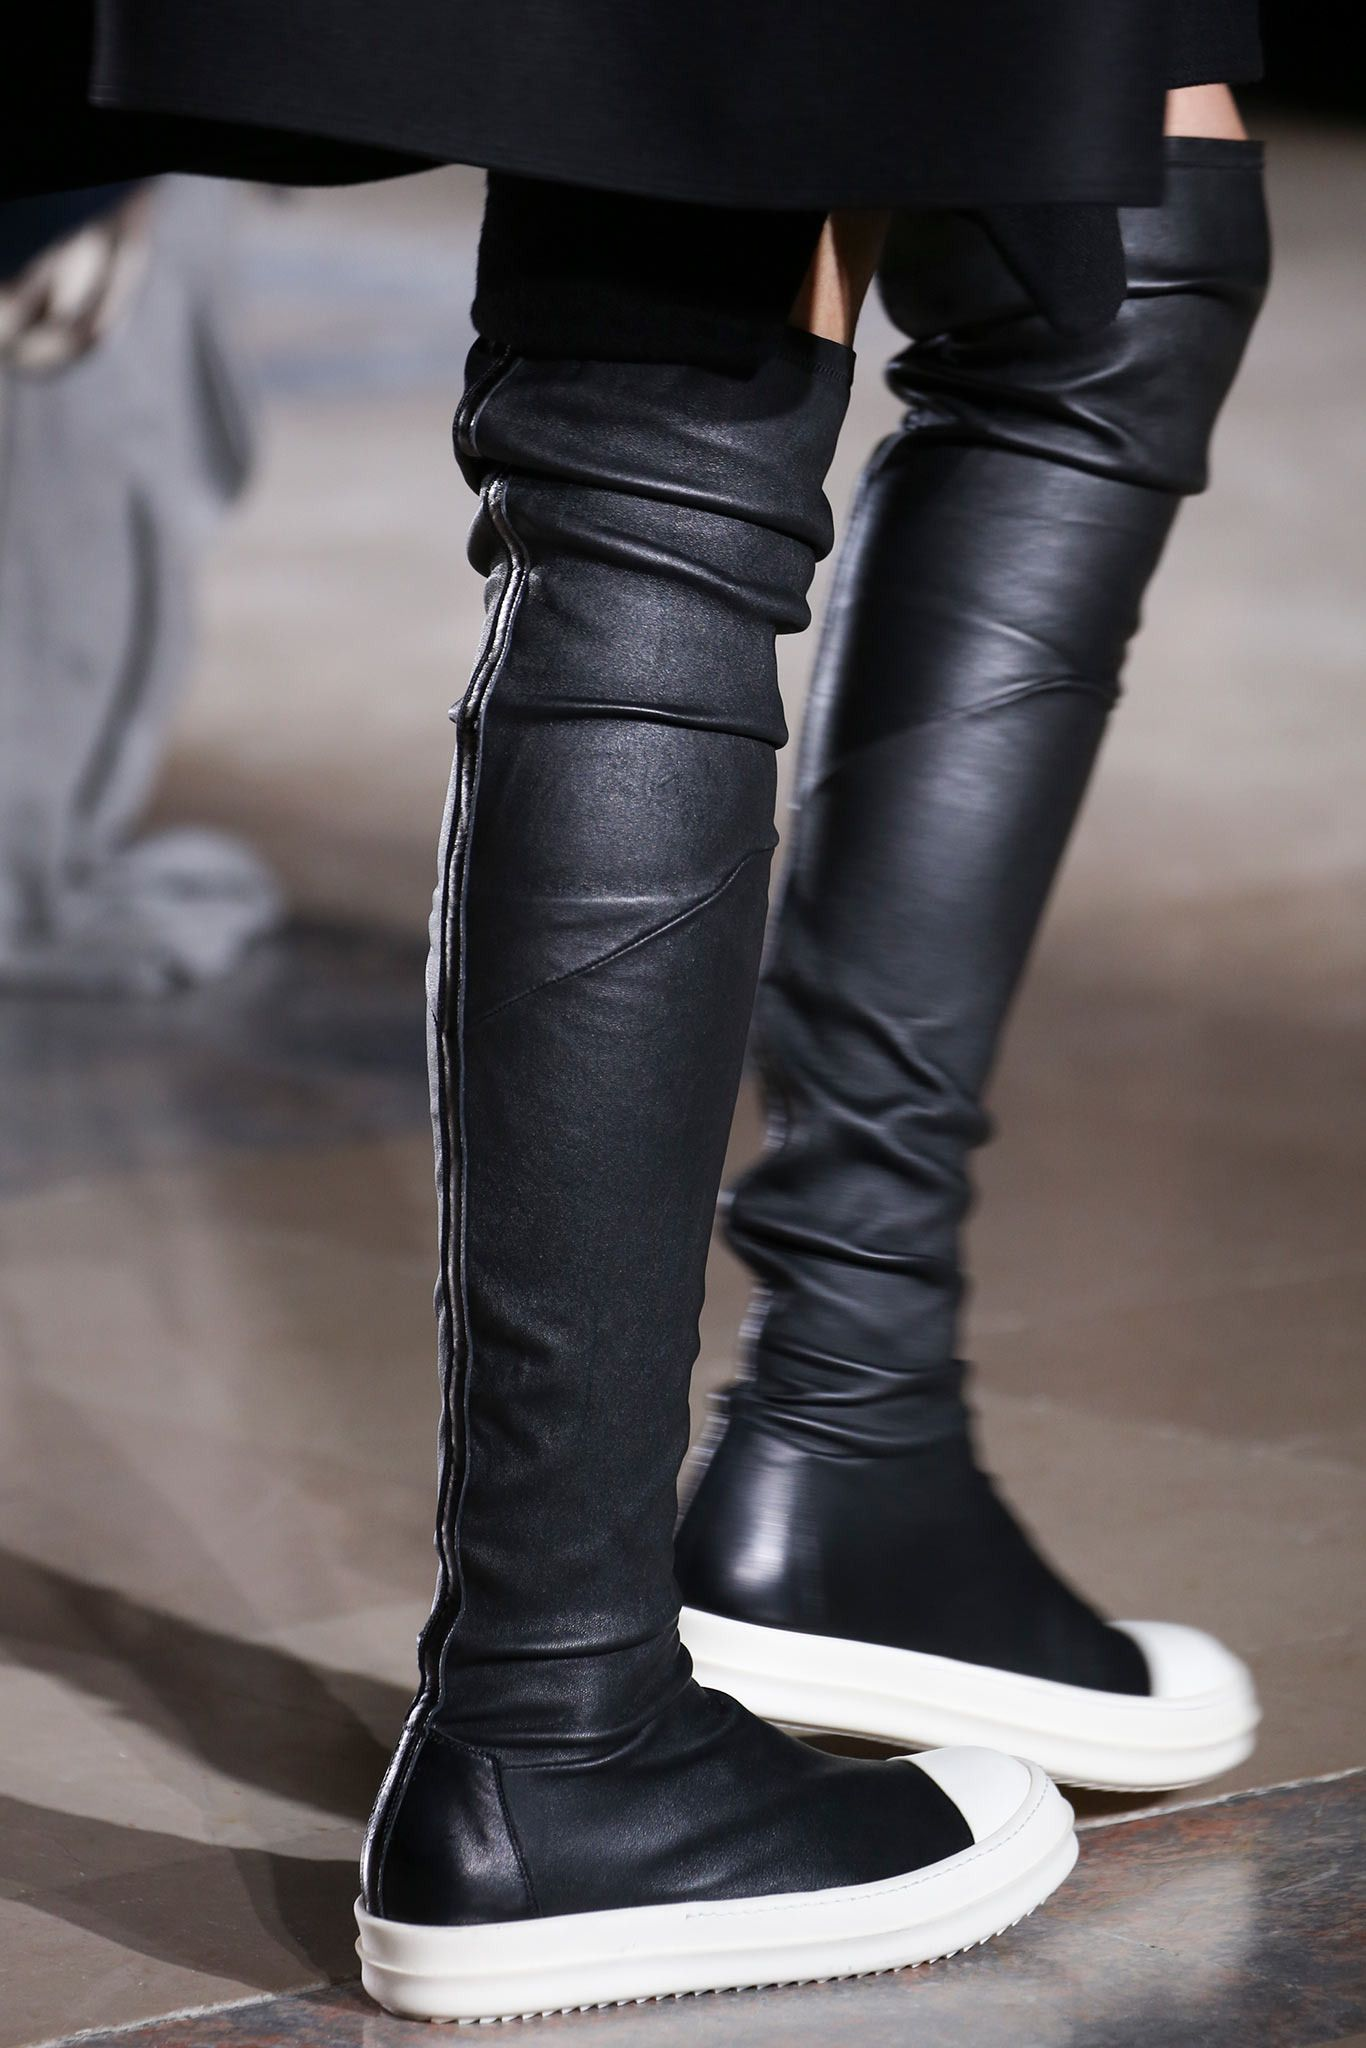 d3433f27be2 Black leather white sole over the knee sneaker boots. Rick Owens ...